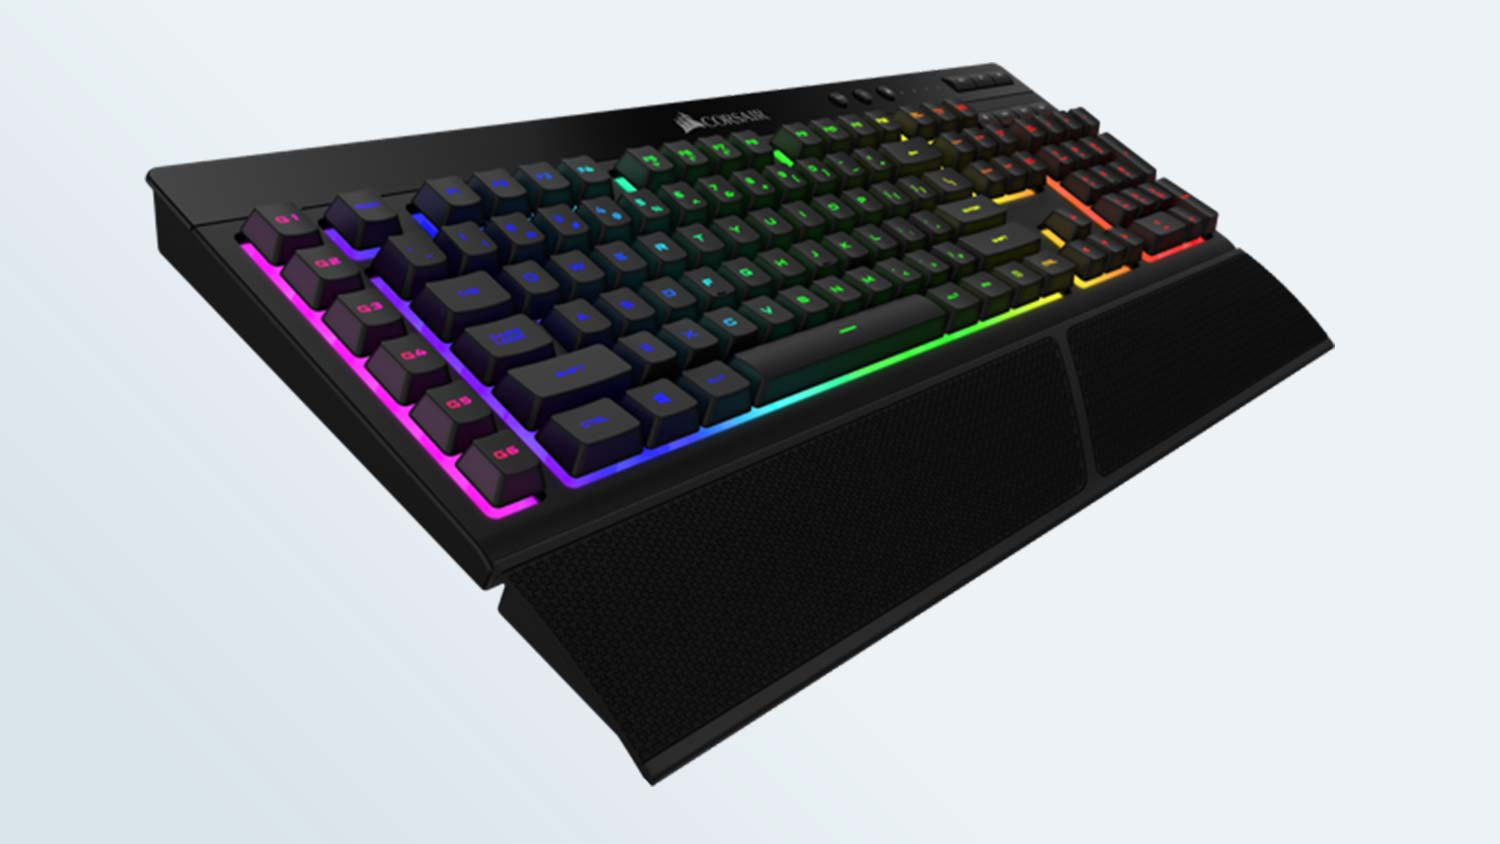 Corsair K57 RGB Wireless Keyboard Review: Colorful, But